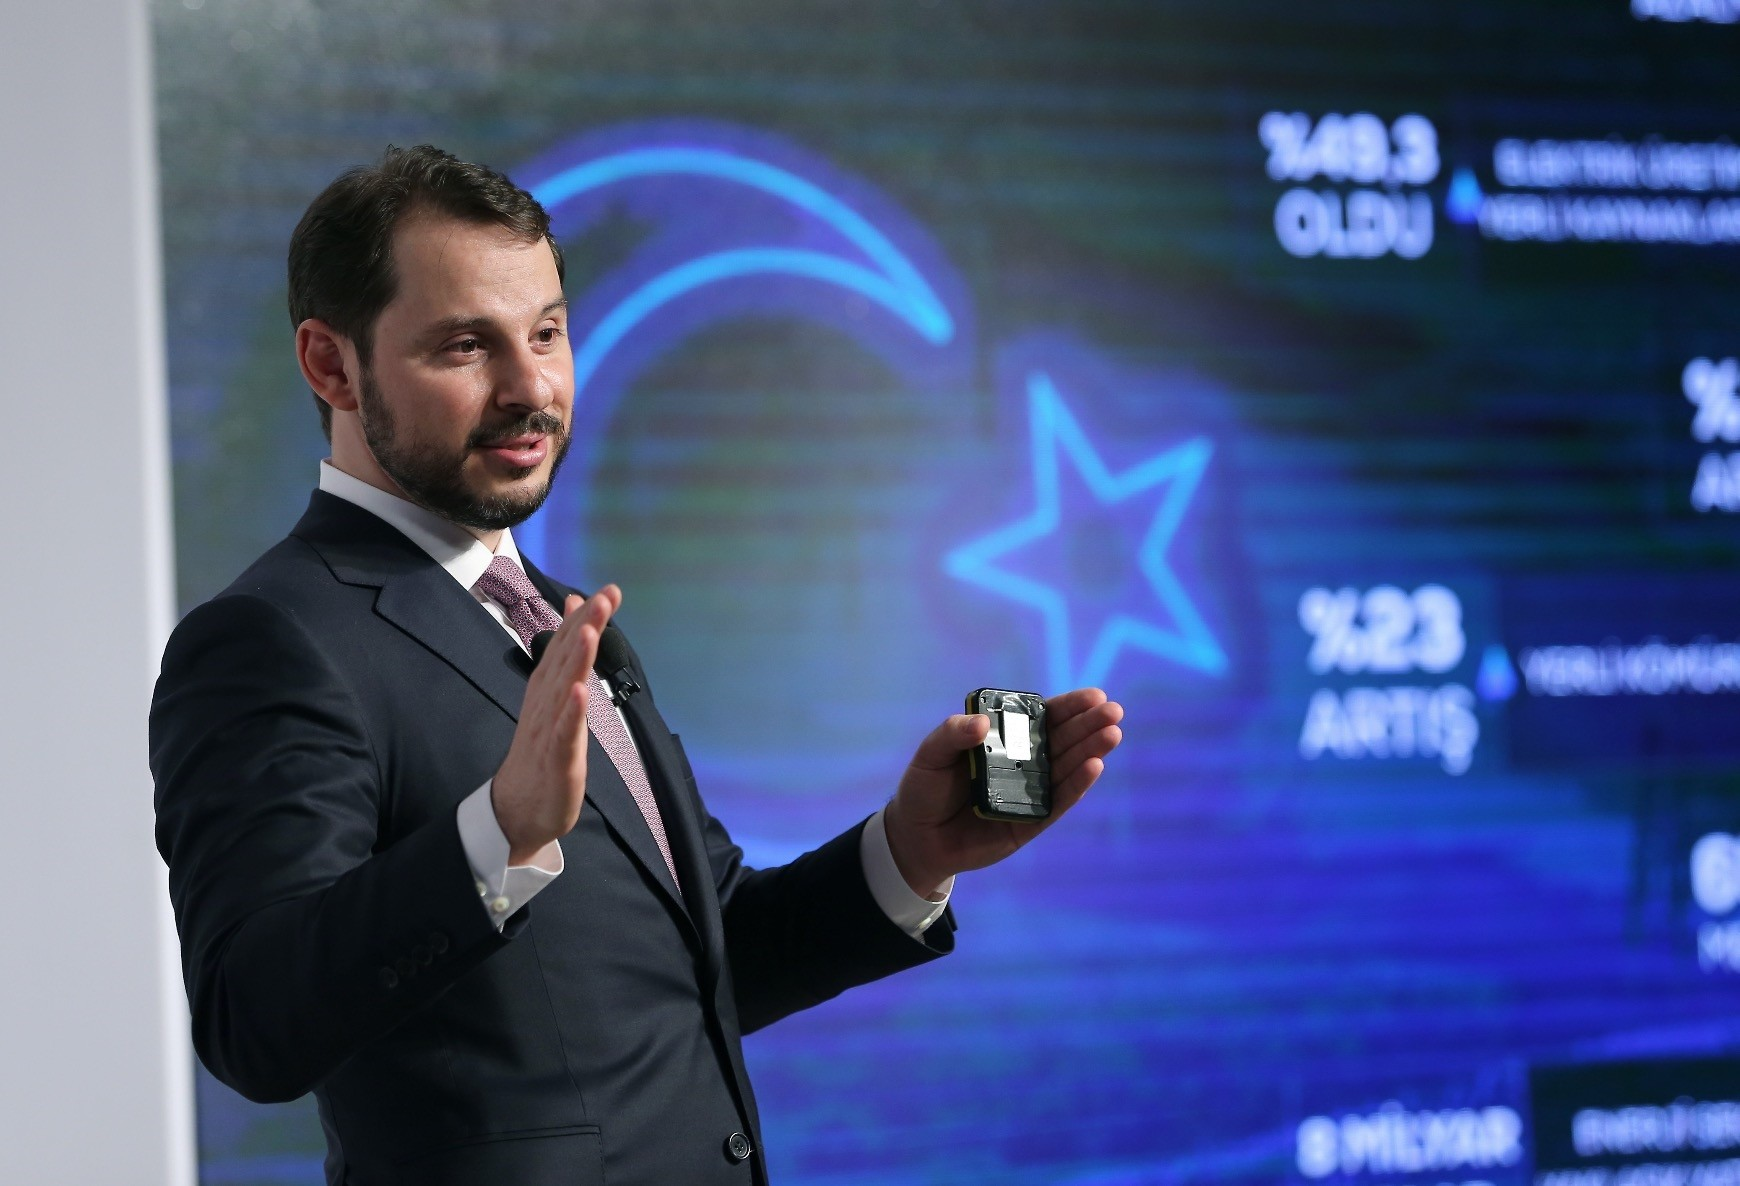 Berat Albayrak, the treasury and finance minister in the new presidential system, speaks during a meeting on the future plan of Turkeyu2019s energy policies while he was in office as the energy minister.